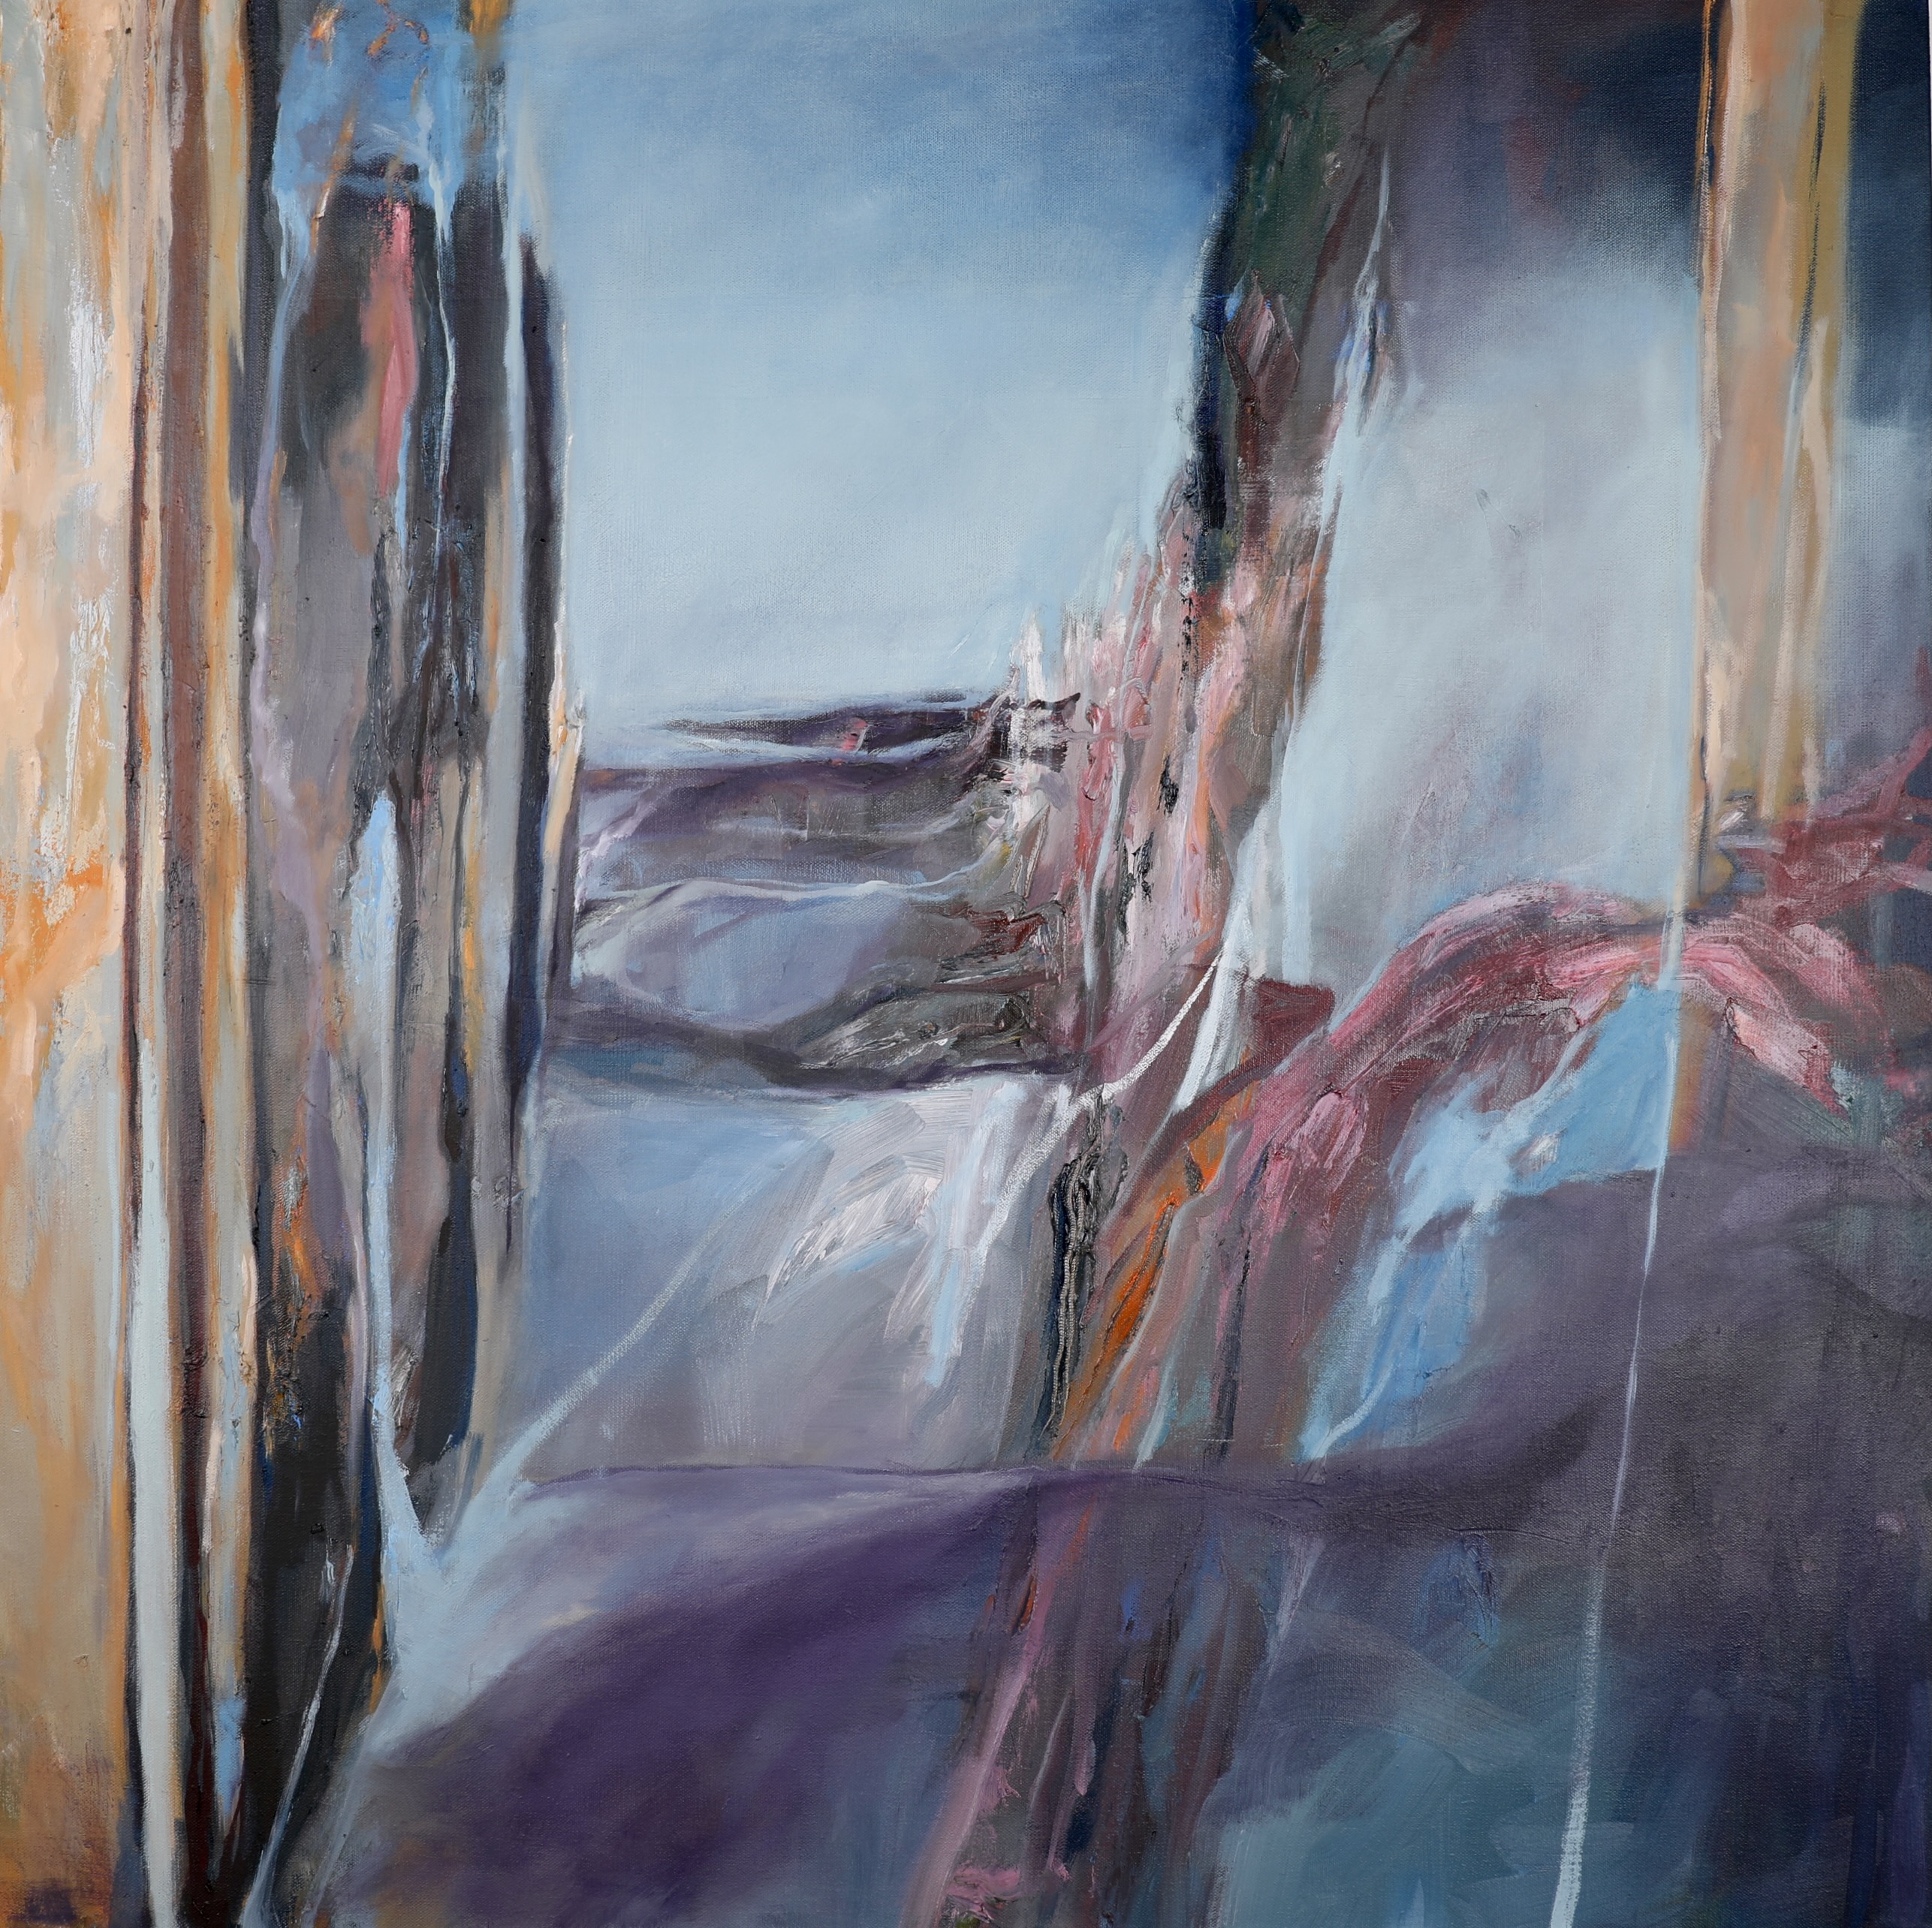 Chenxi Gao, The Way Out, Oil on Canvas, September 2020, 36 x 36